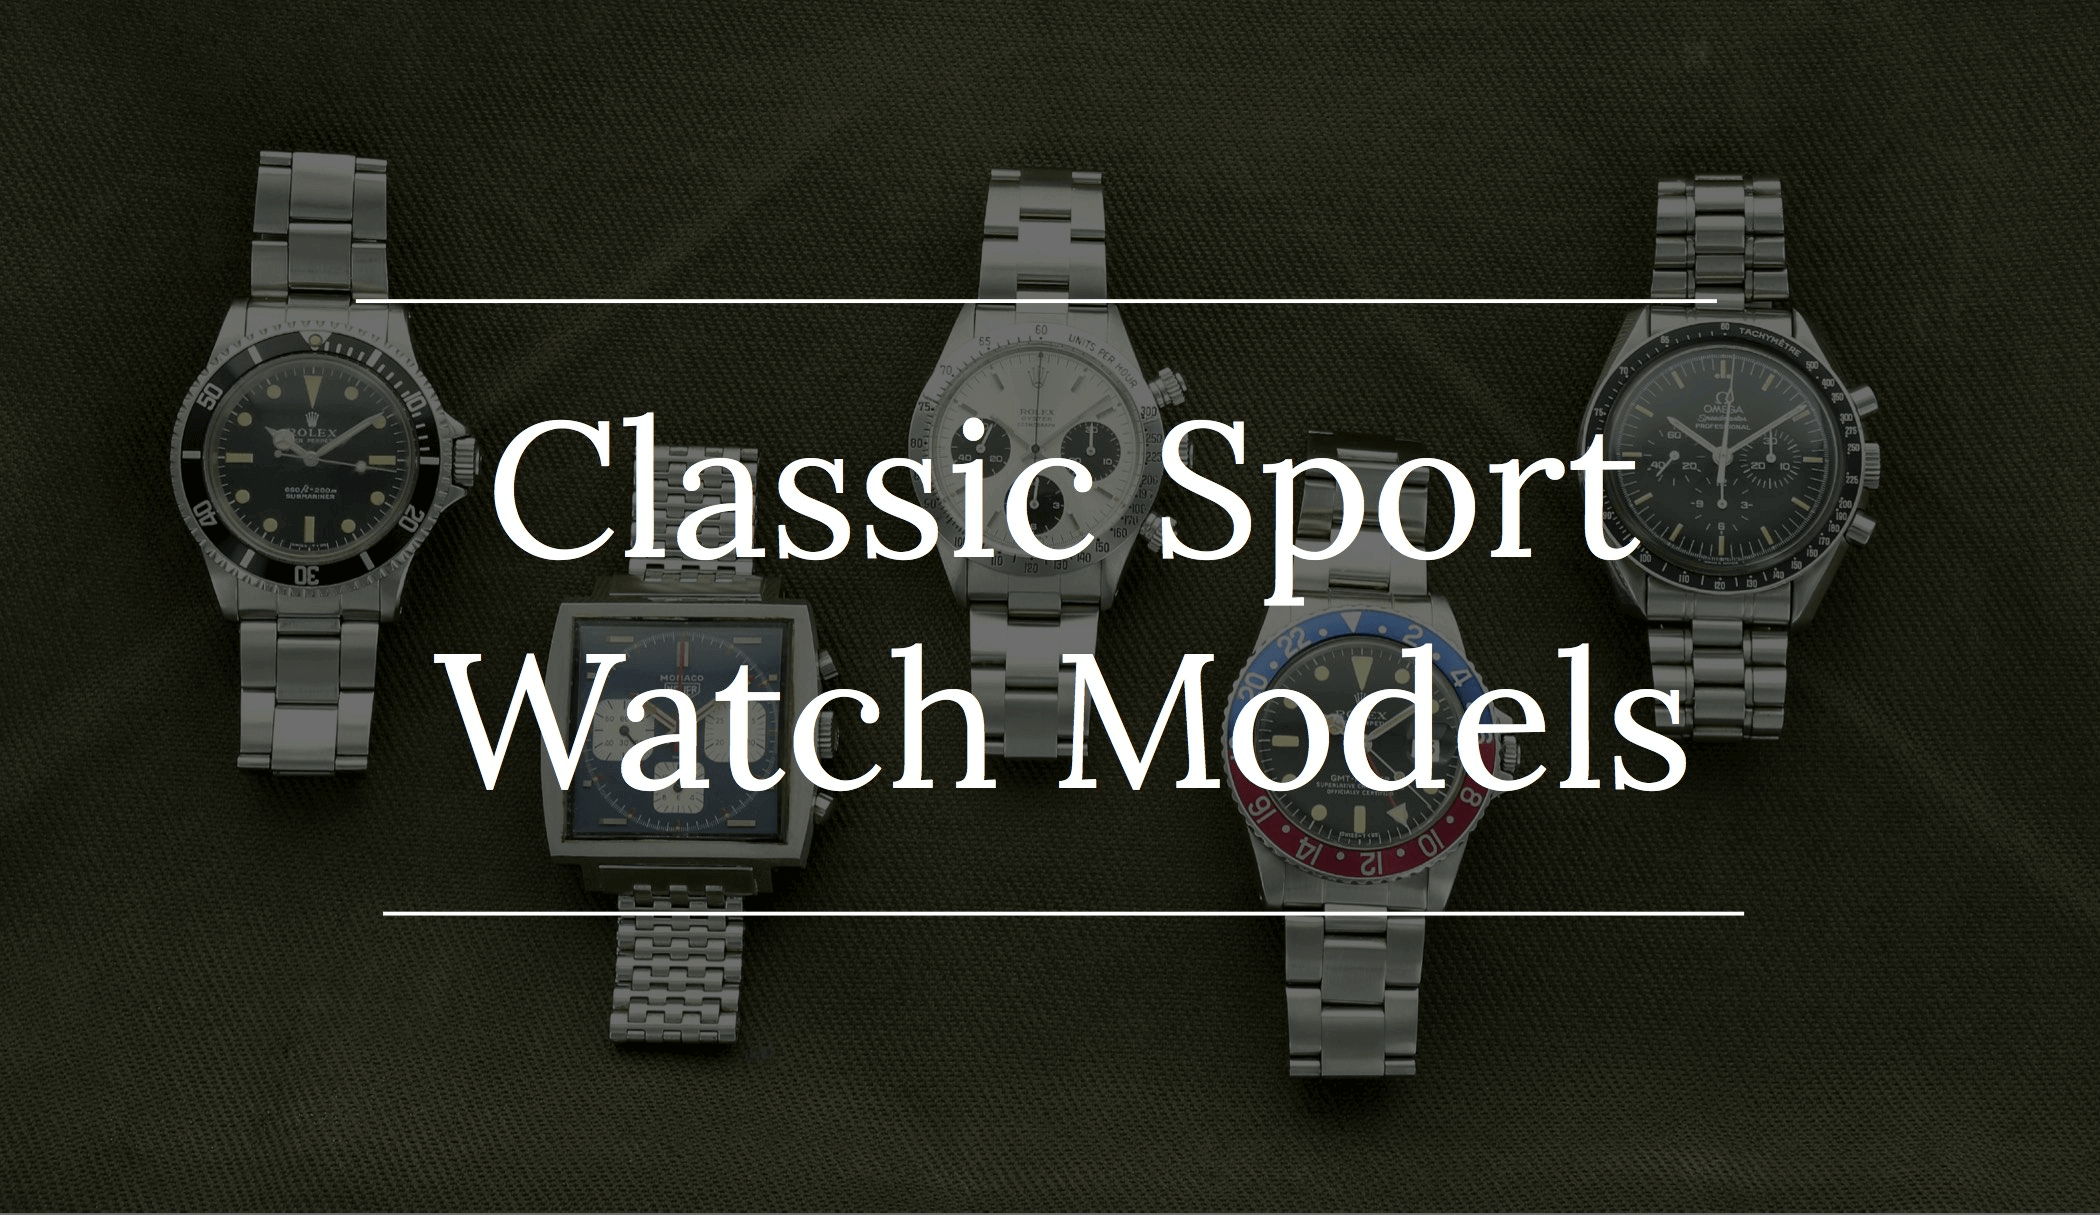 Sports Watches, Rolex Submariner, Rolex GMT, Rolex Daytona, Omega Speedmaster, Heuer Monaco